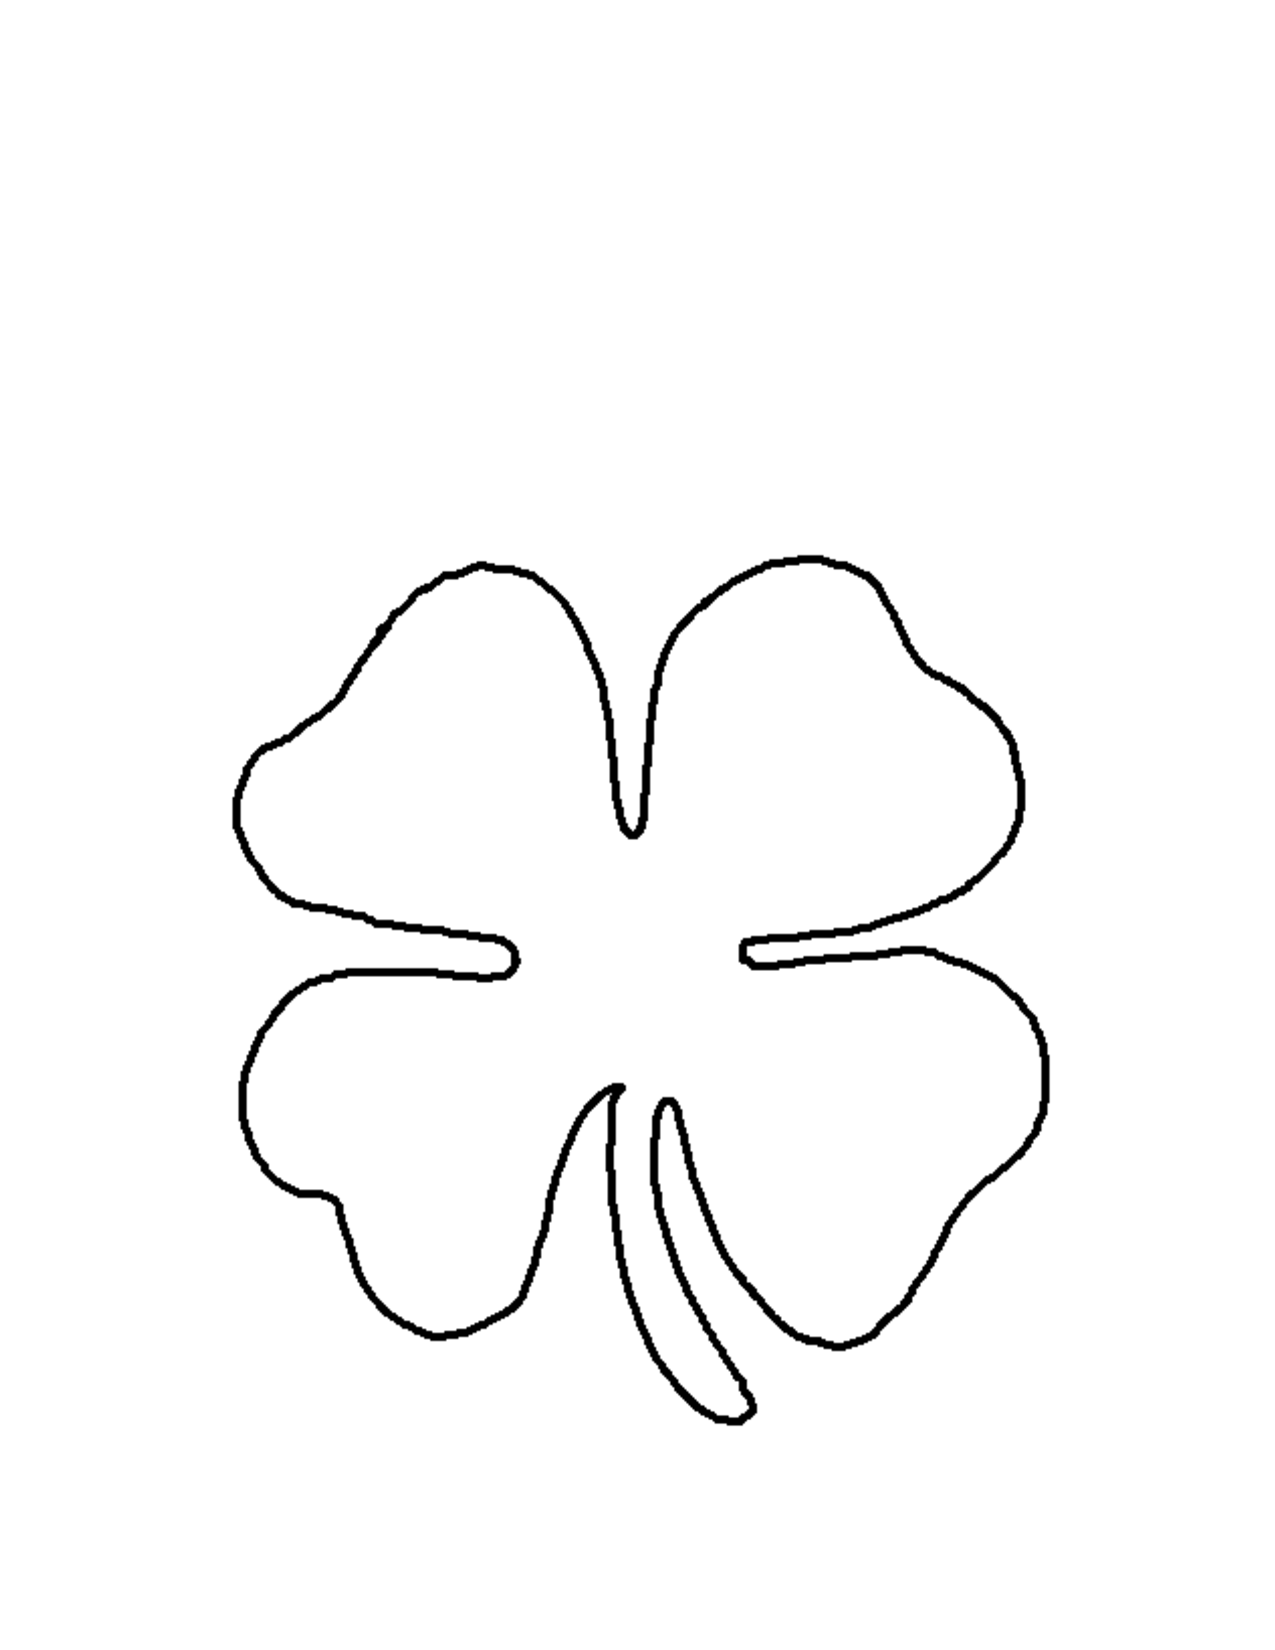 Outline Of Shamrock